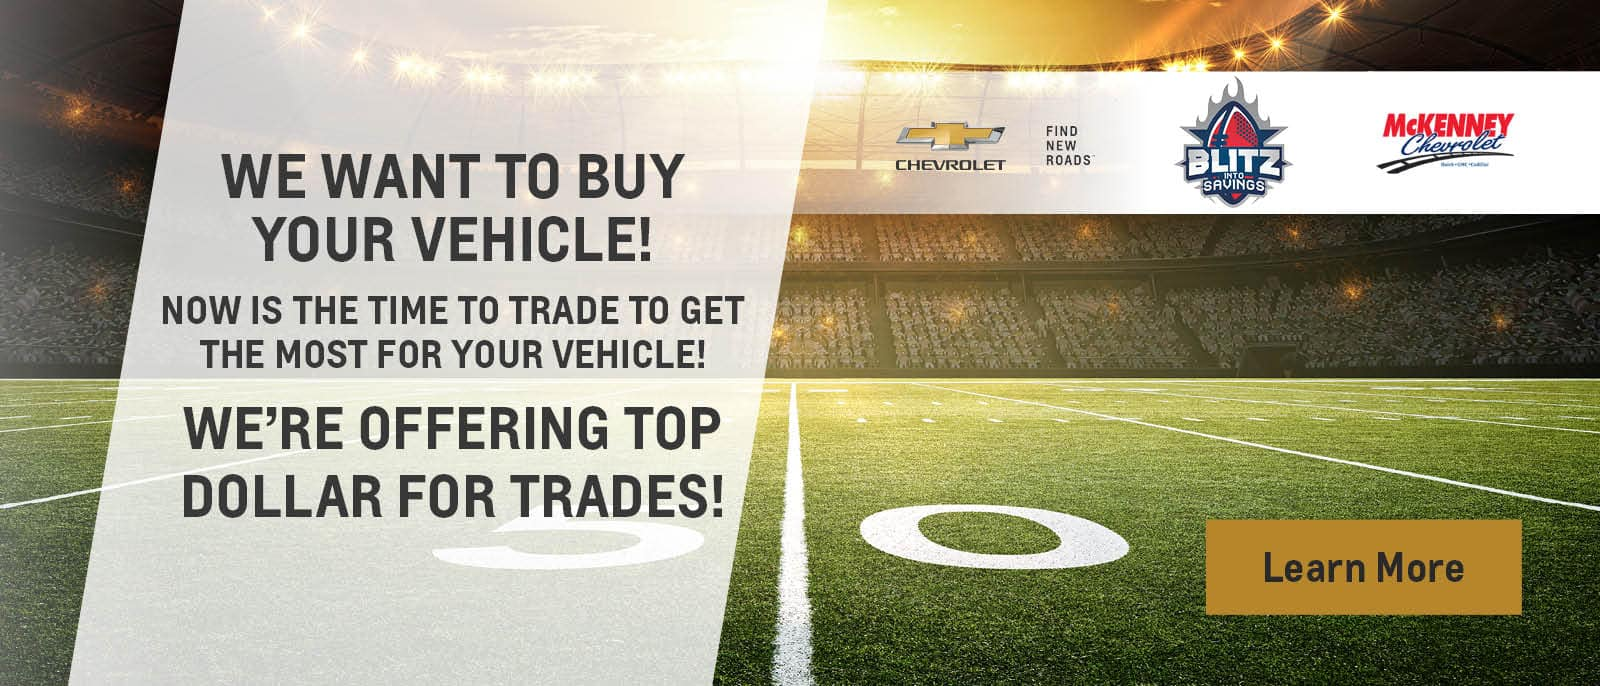 WE WANT TO BUY YOUR VEHICLE!